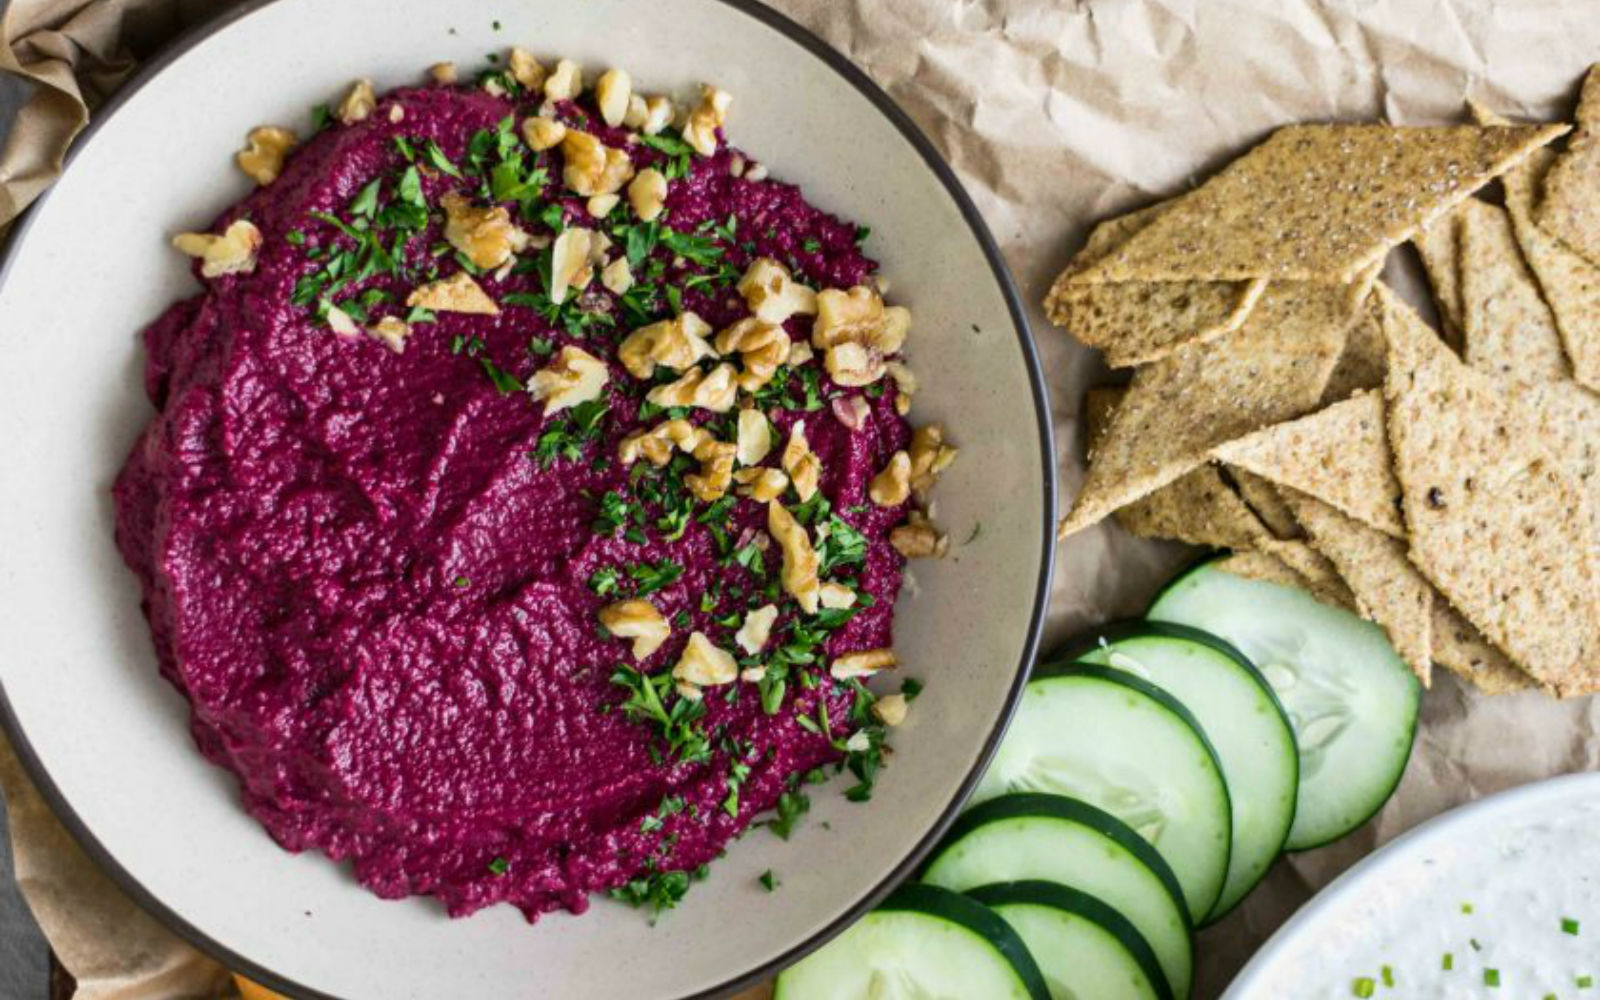 Vegan Beet and Walnut Dip